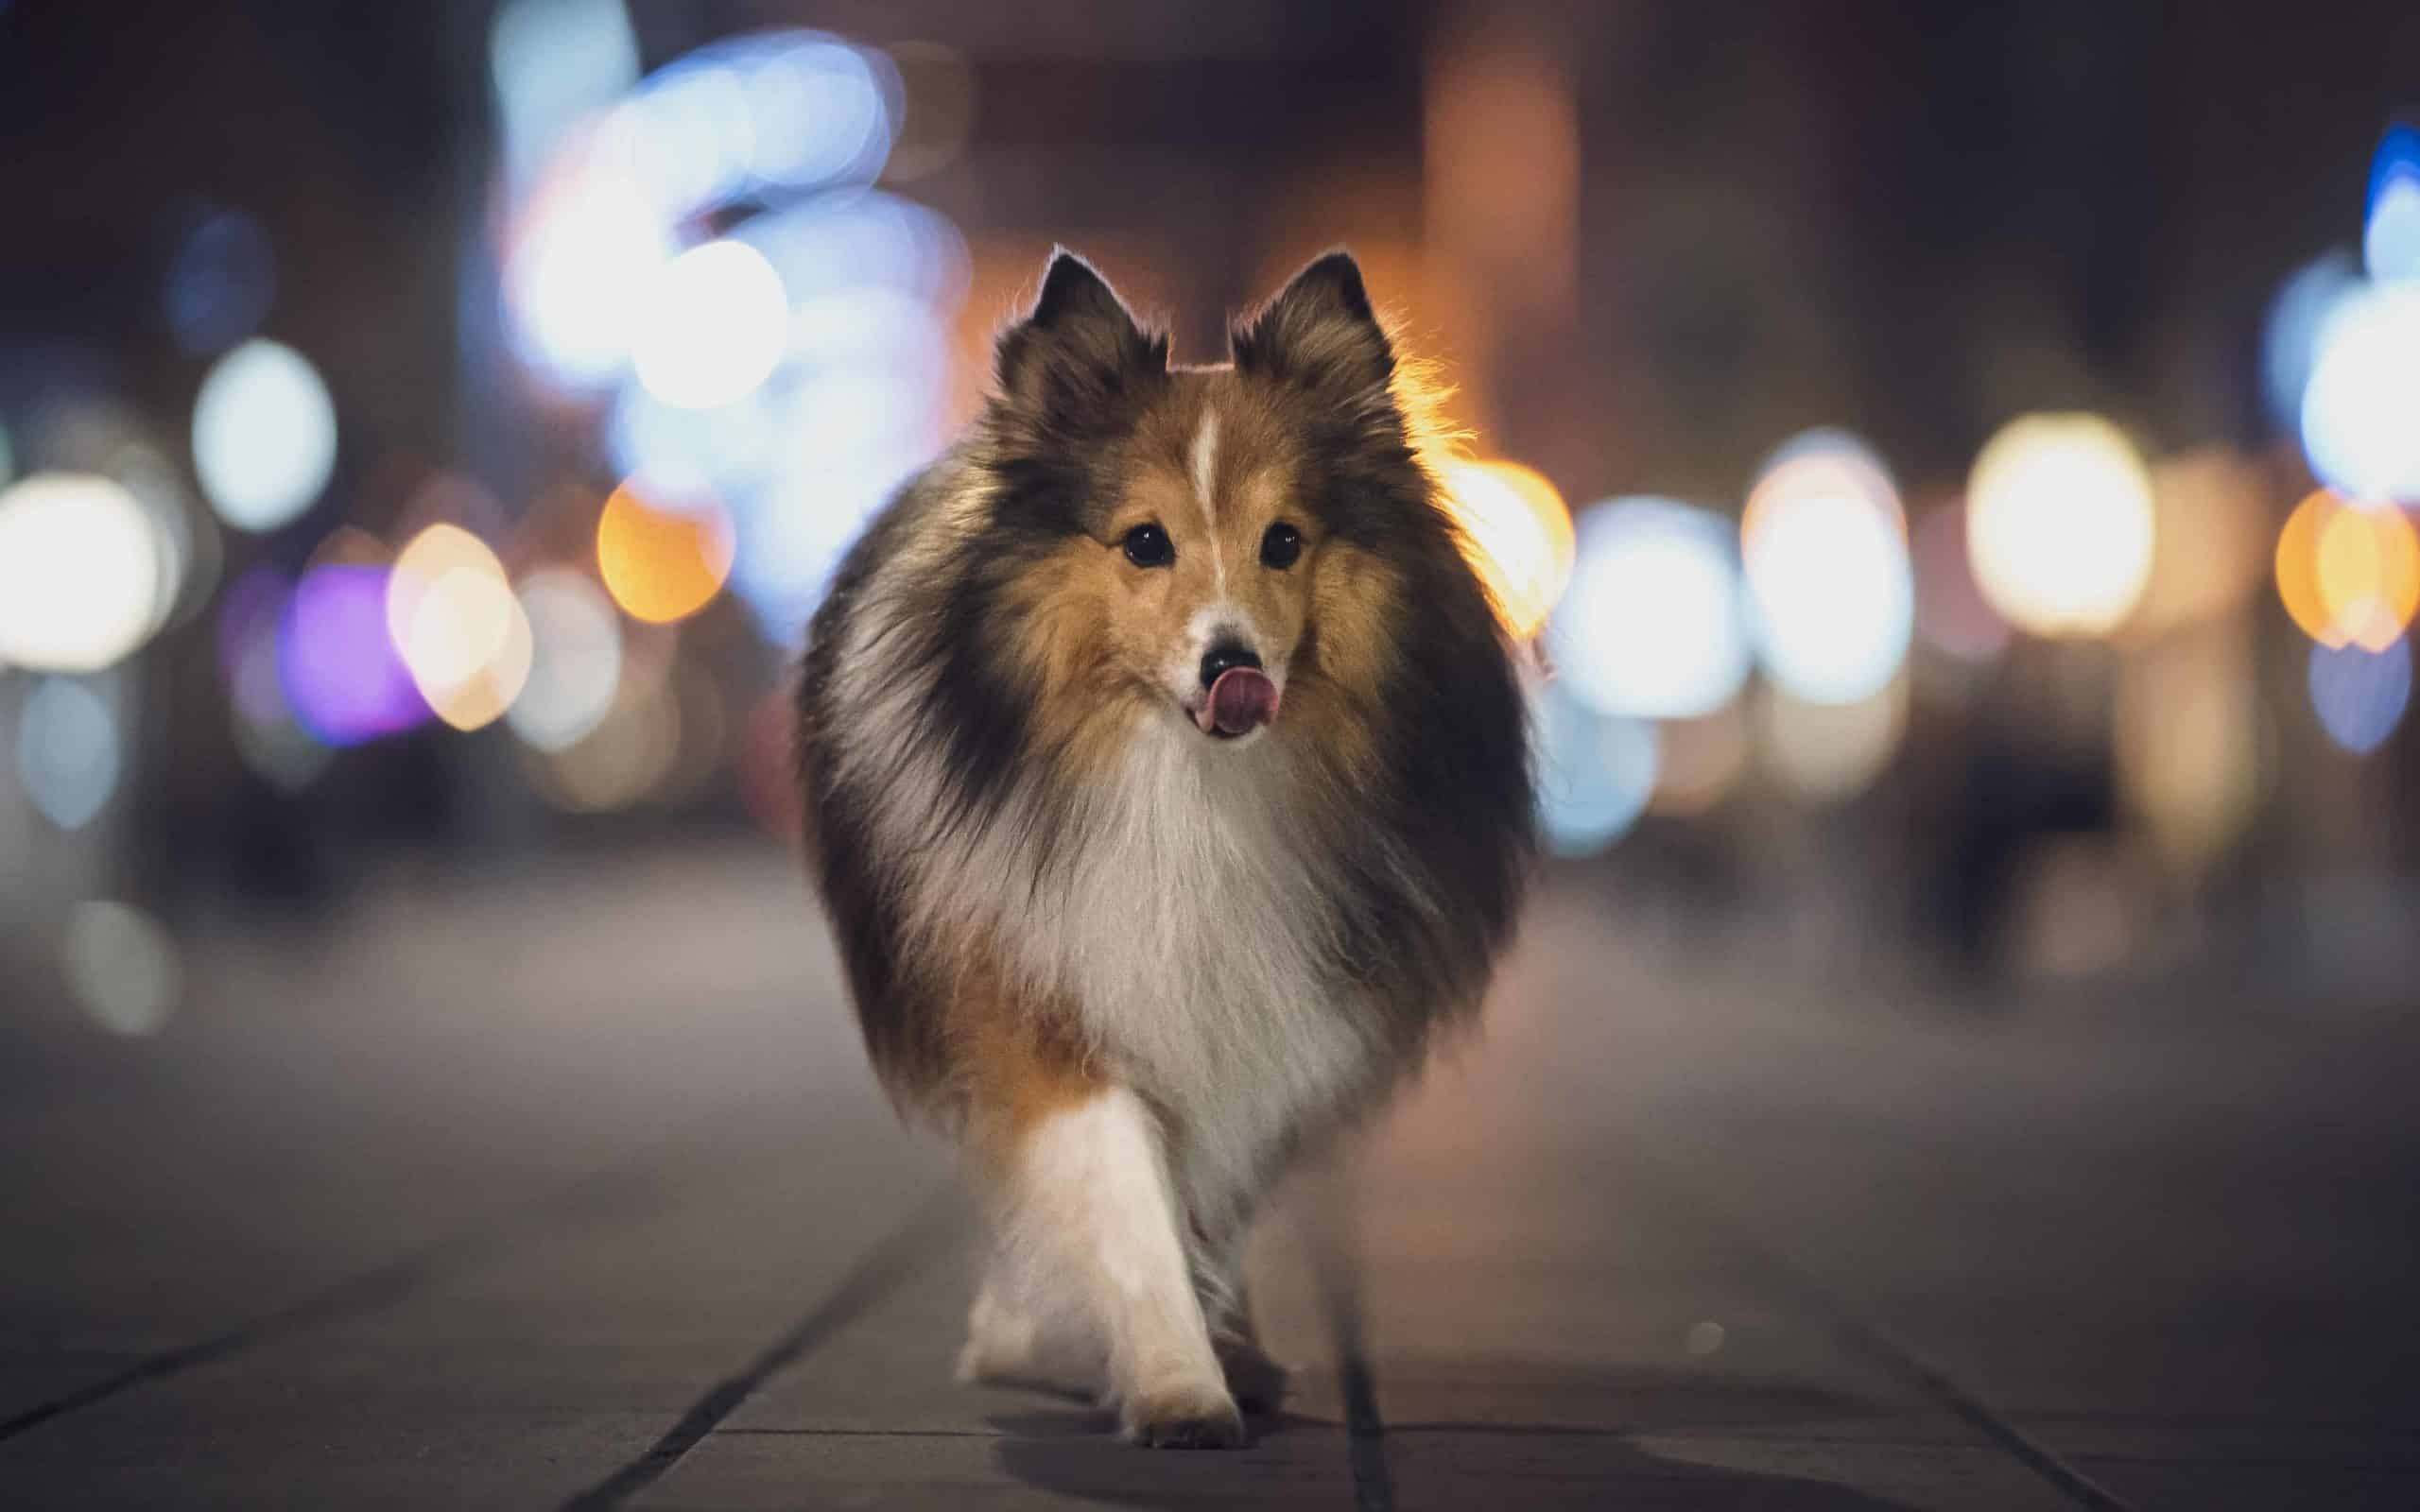 Sheltie walks at night. Night walking is not the right time to take an unfamiliar and possibly adventurous path.